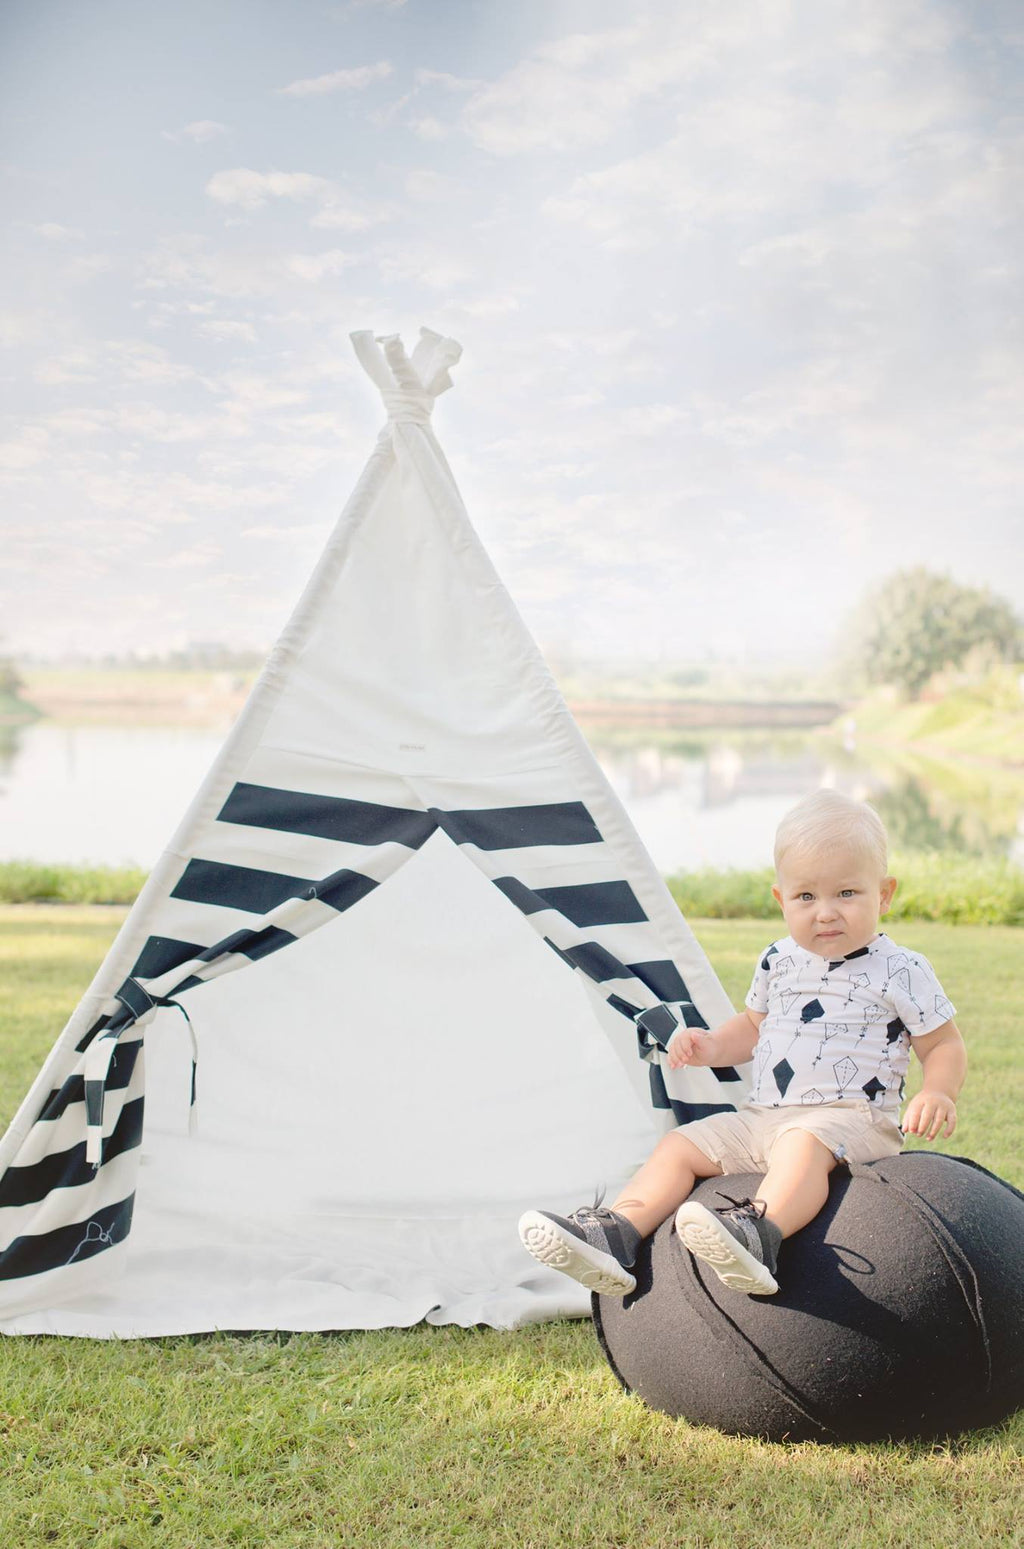 Children teepee with monochrome stripes